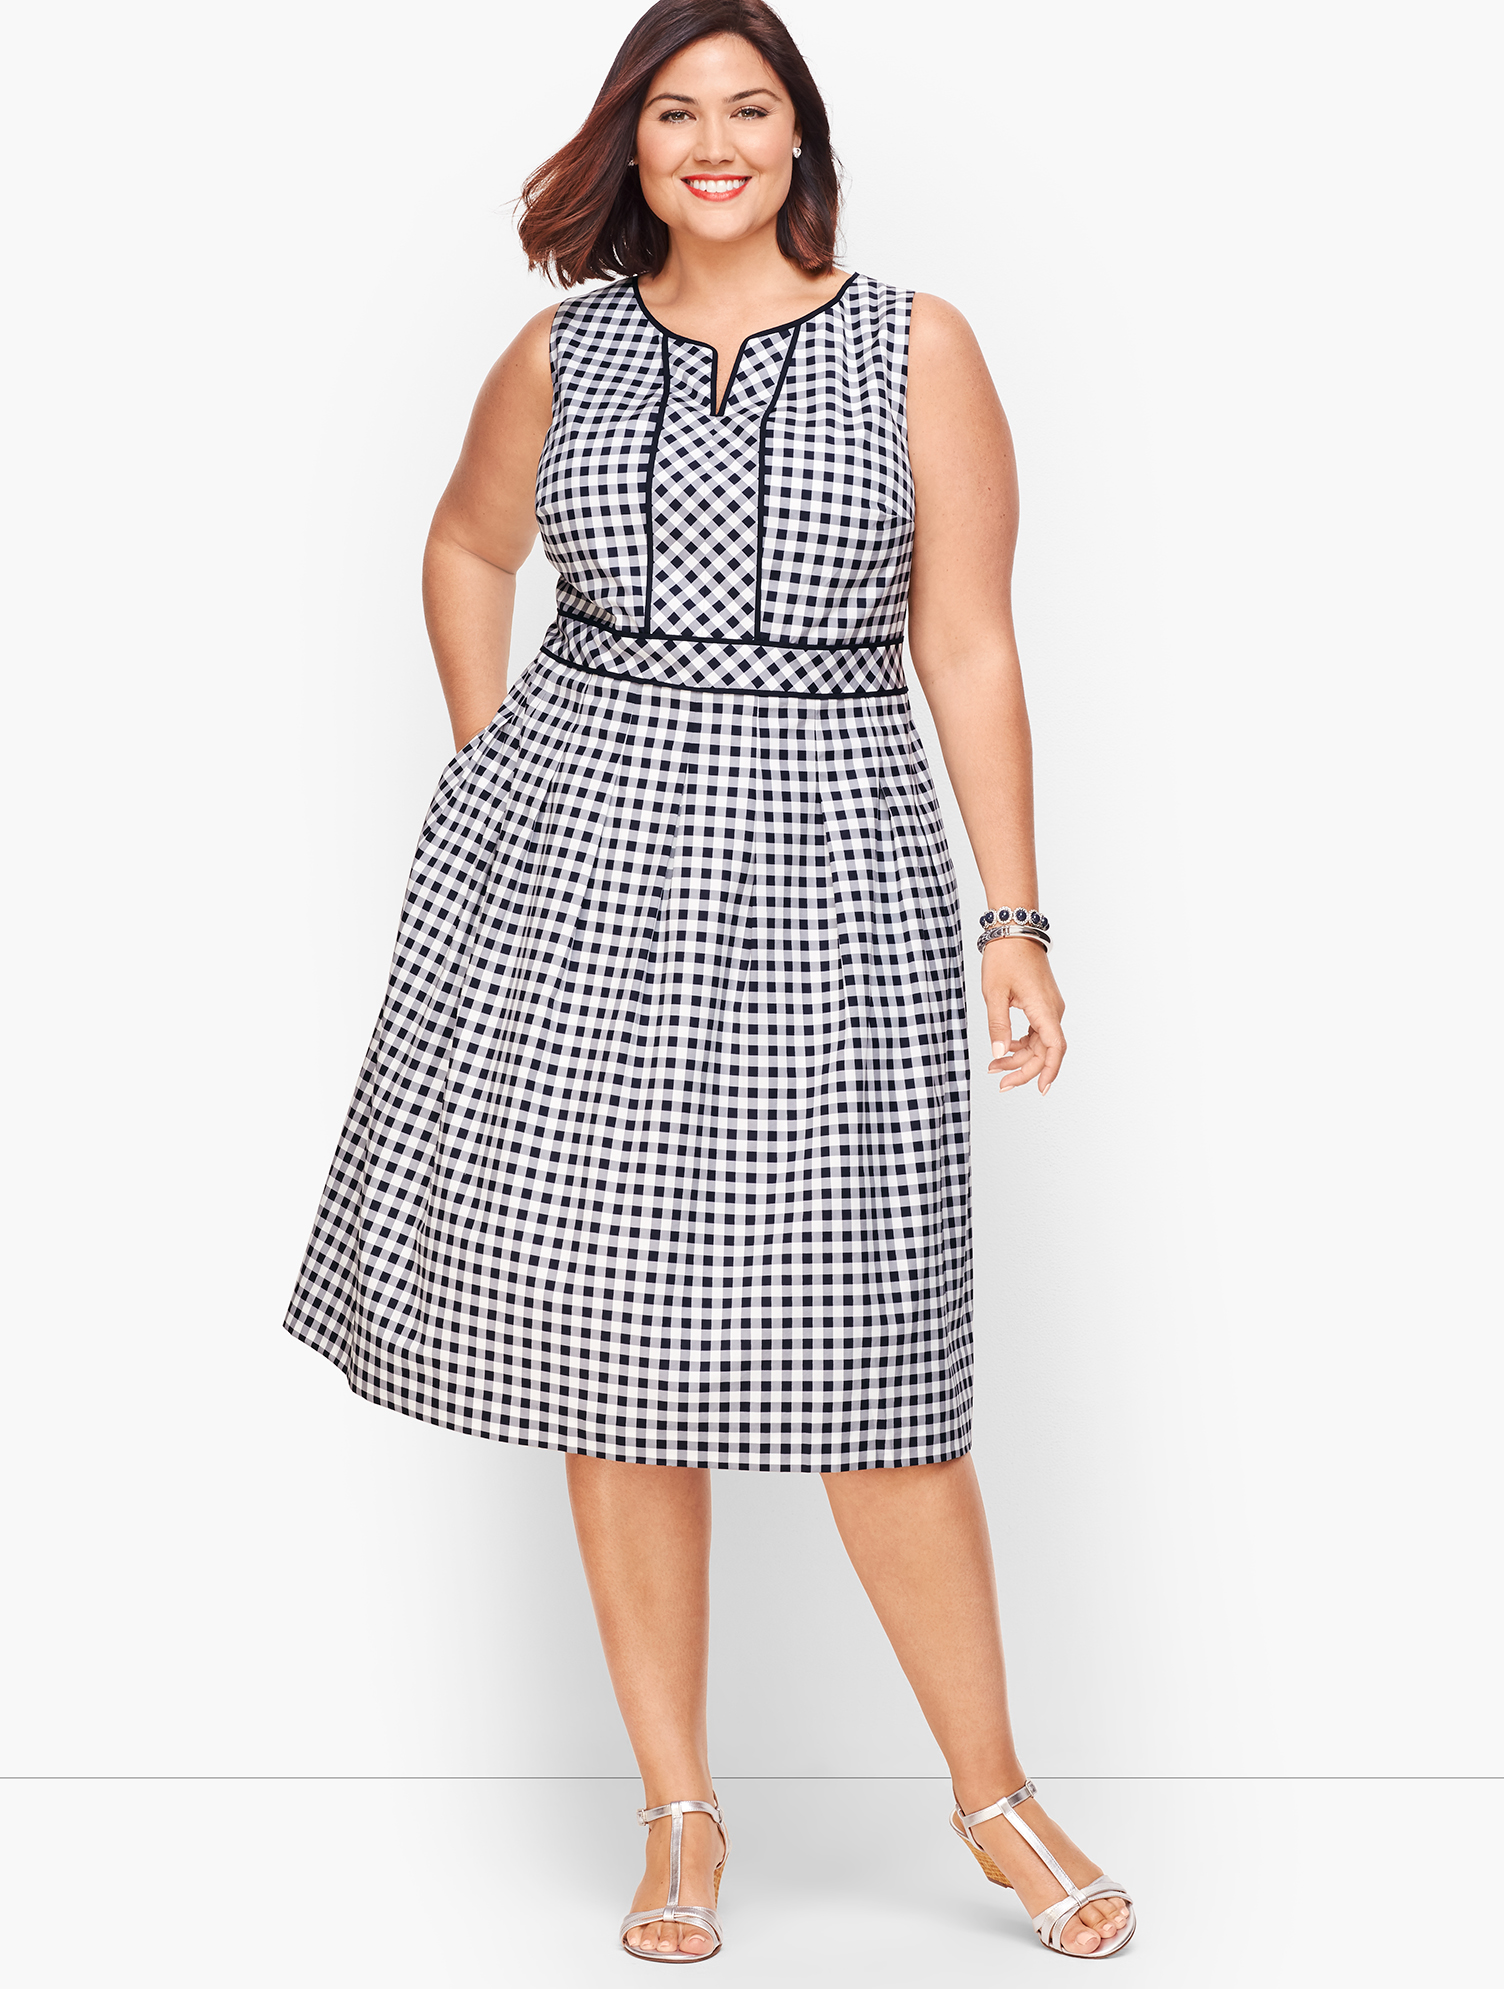 1920s Downton Abbey Dresses Gingham Fit  Flare Dress - INDIGO-BLUEWHITE - 22 - Talbots $149.00 AT vintagedancer.com